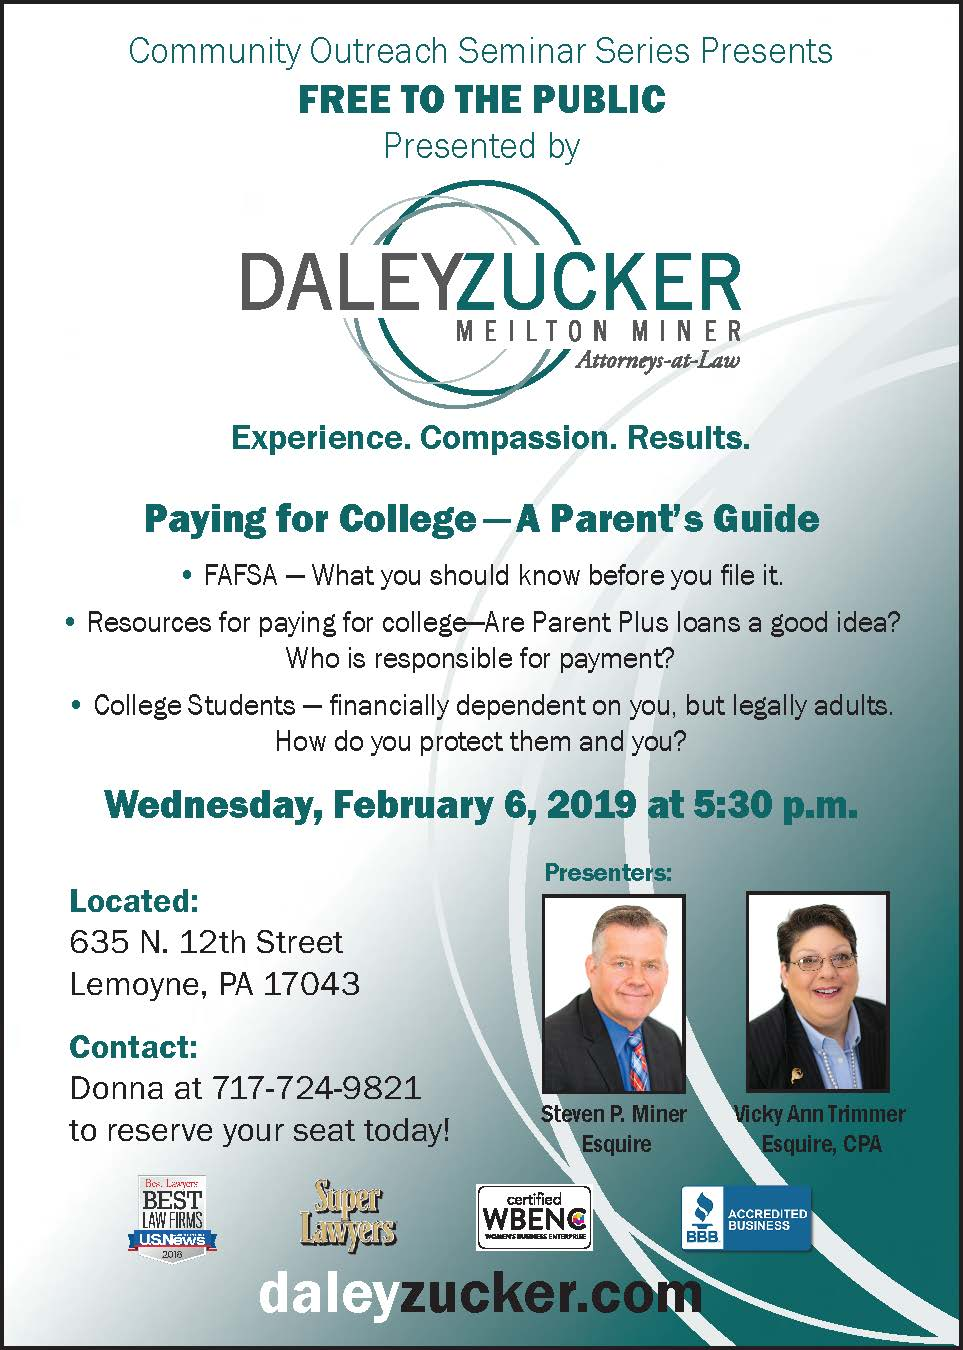 Paying for College - A Parent's Guide